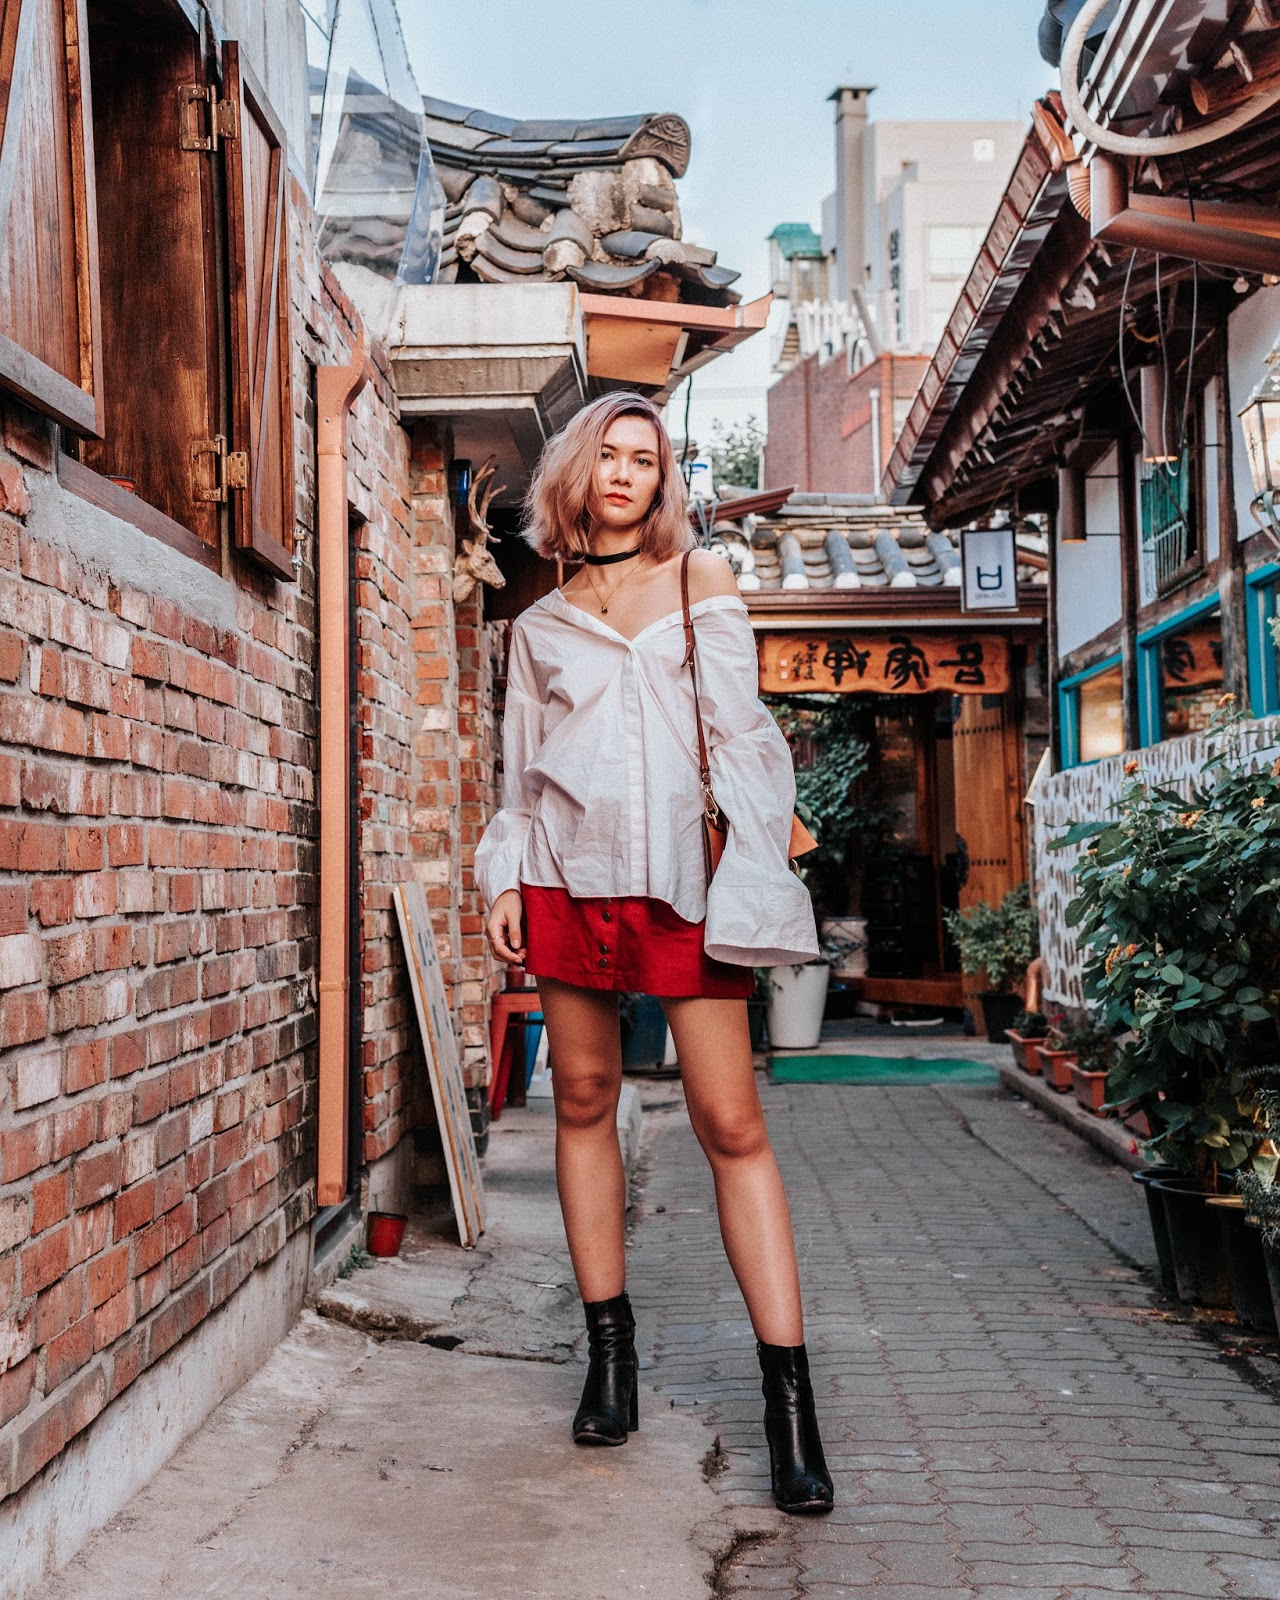 korea travel guide, seoul travel guide, seoul, korea, bukcheon, hanok village, insadong, travel guide, travel, seoul tourism, travel blog, and other stories, chloe girl, chloe faye, mejuri necklace, vintage style, retro style